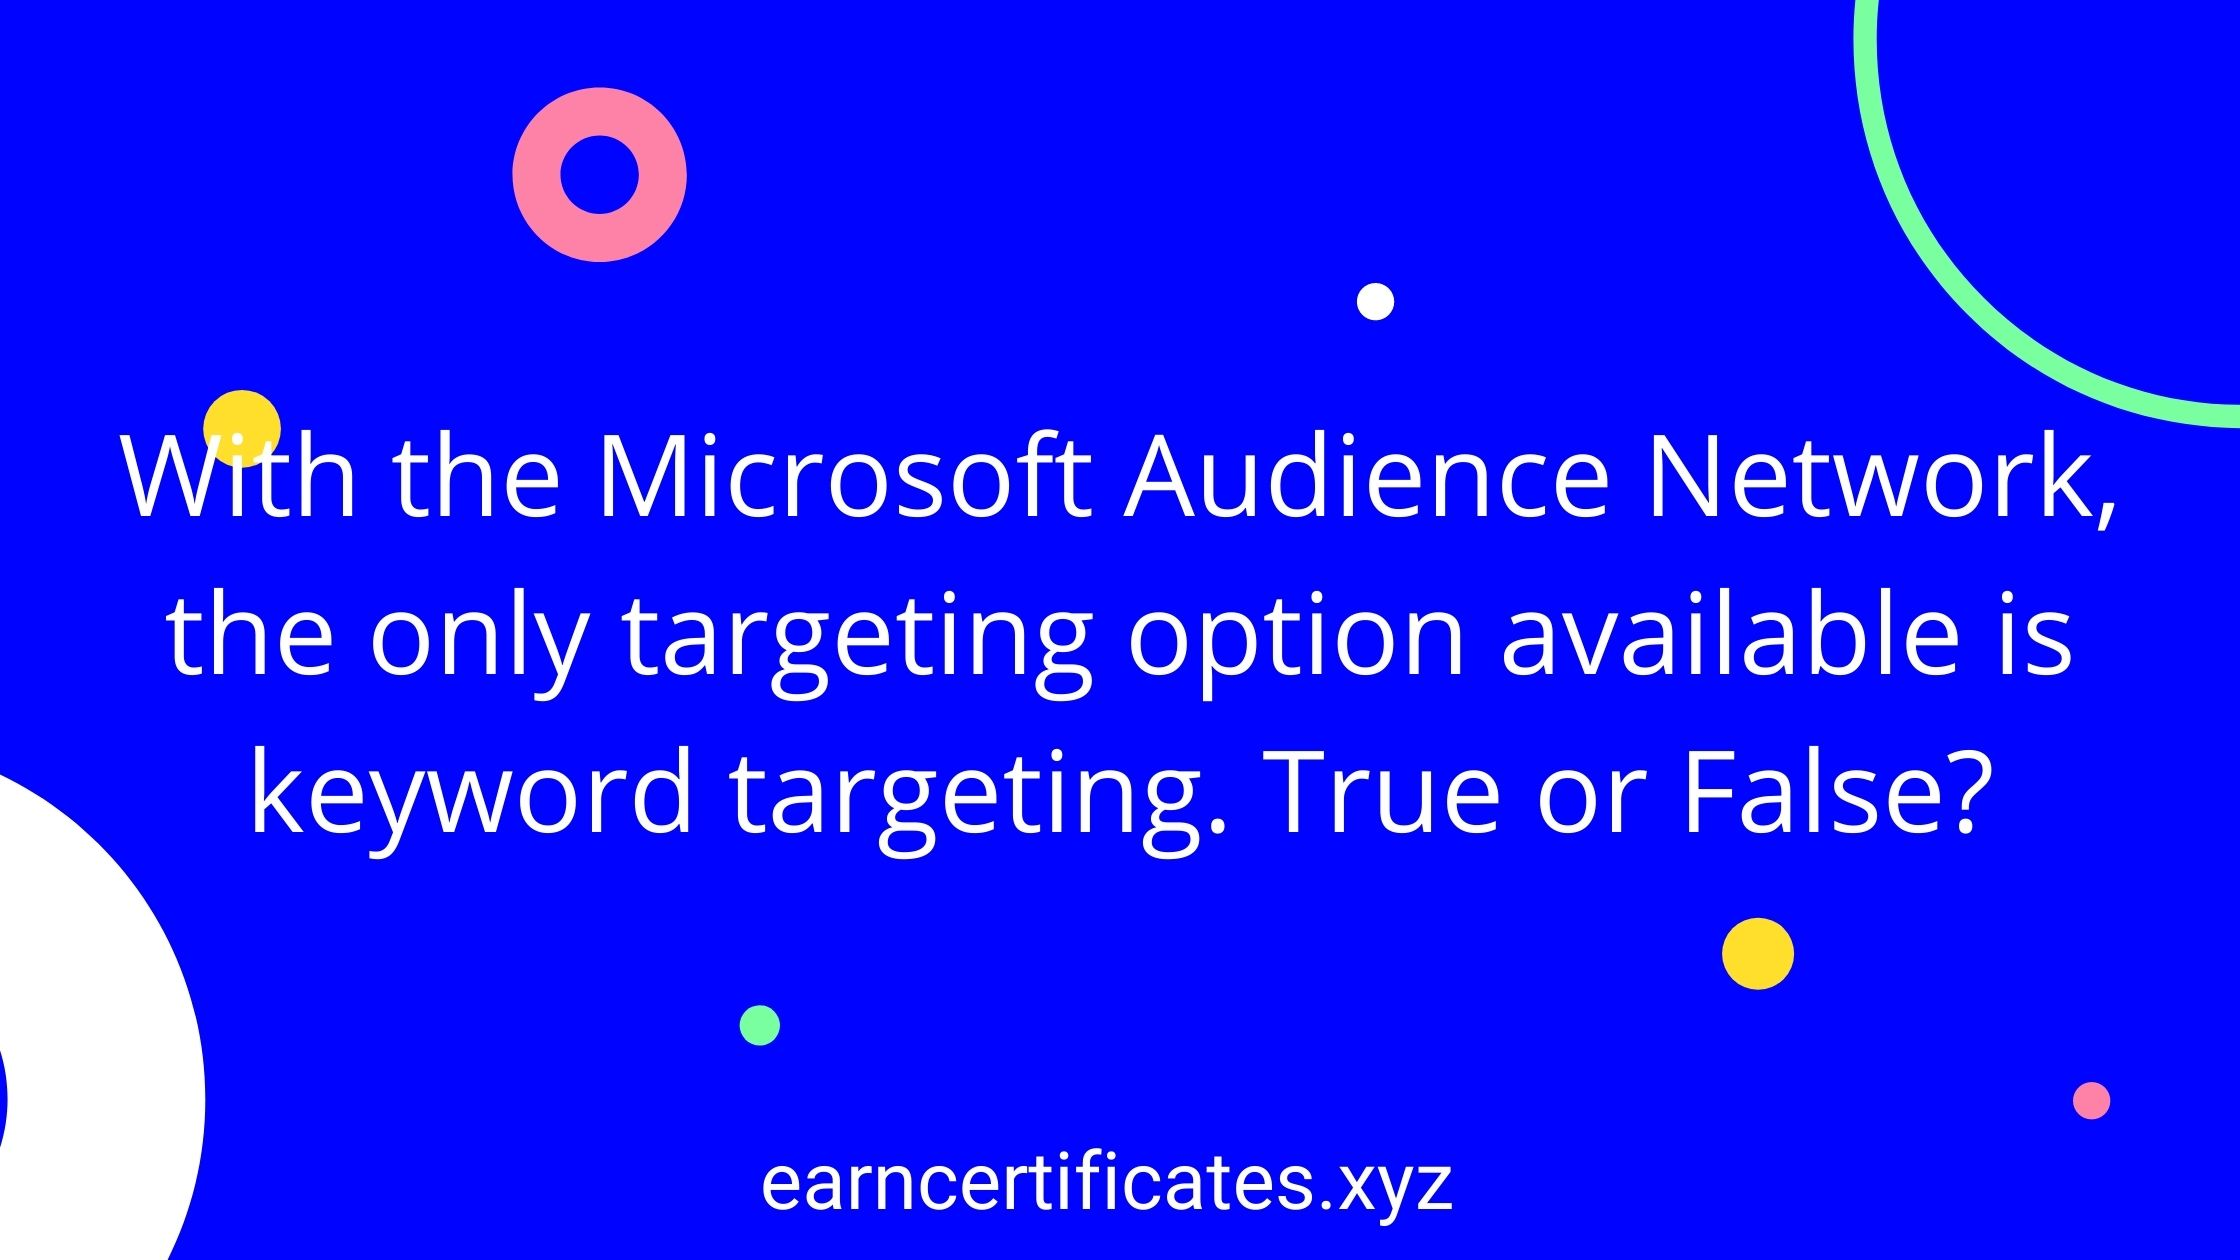 With the Microsoft Audience Network, the only targeting option available is keyword targeting. True or False?